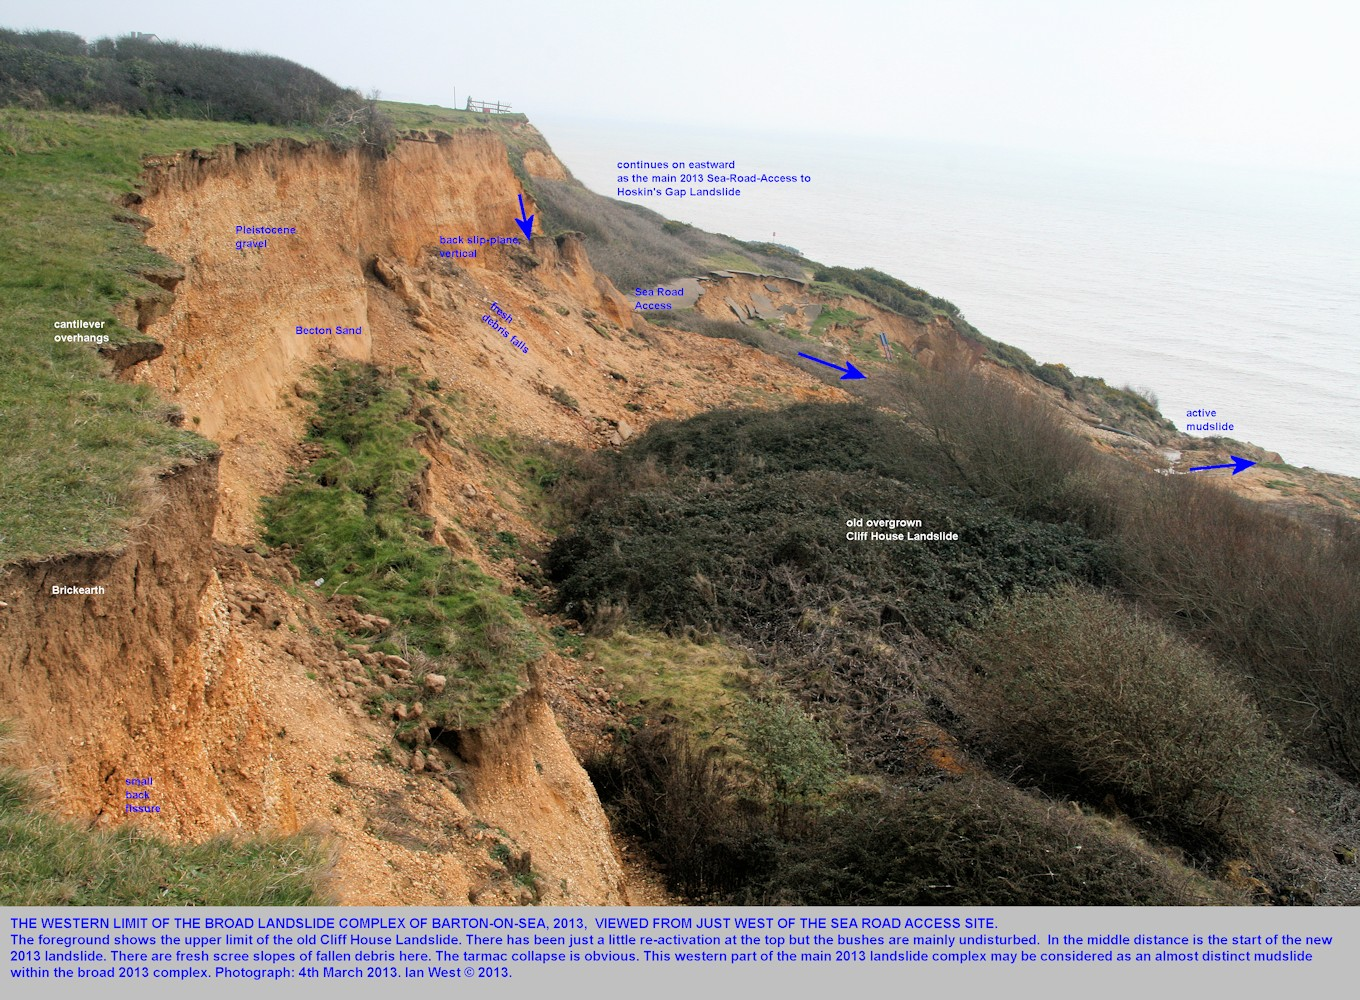 The western limit at the cliff top of the Sea Road Access to Hoskin's Gap, 2013 Landslide, Barton-on-Sea, Hampshire